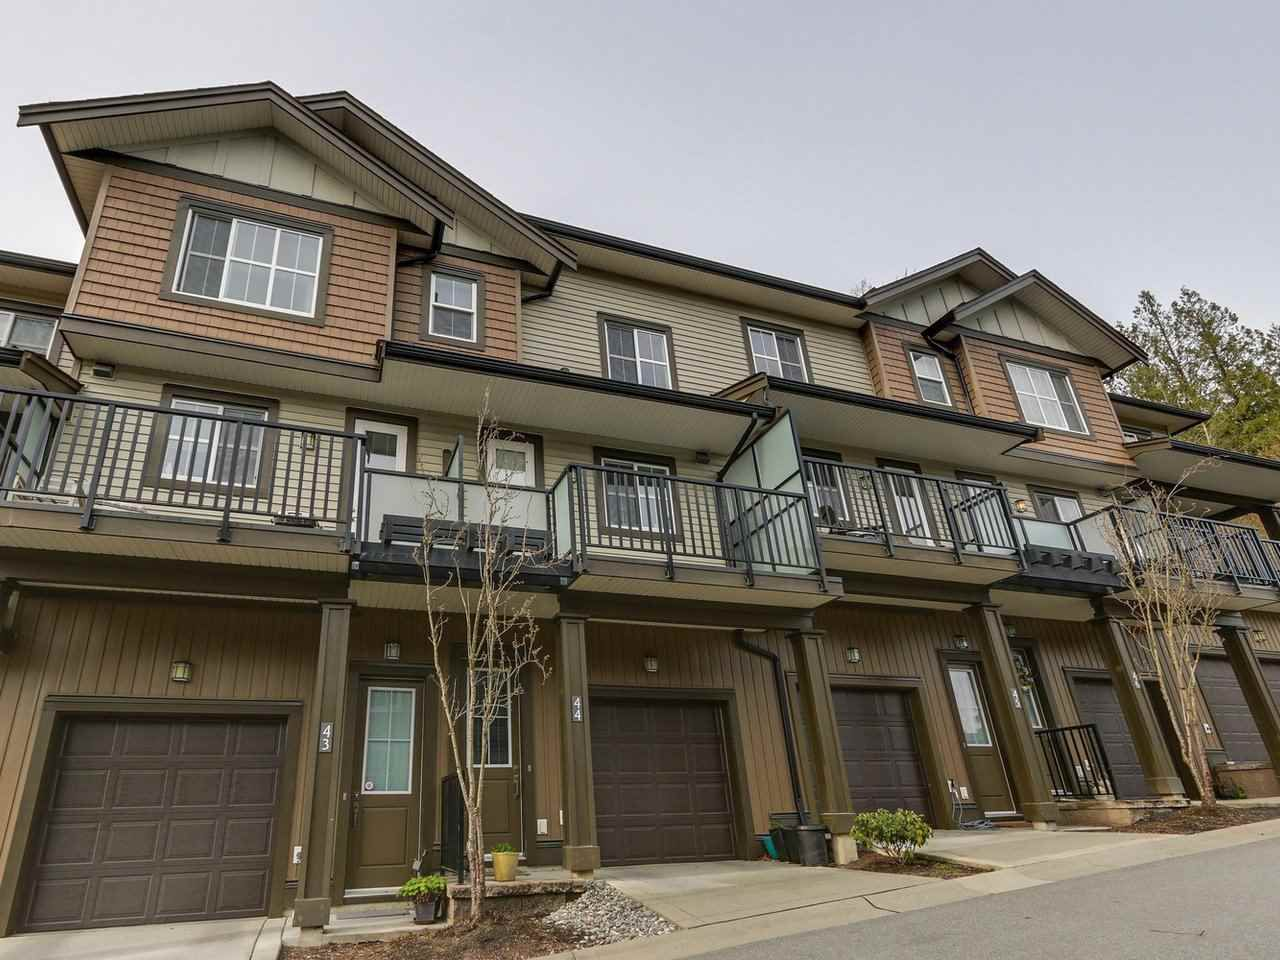 Main Photo: 43 11176 GILKER HILL ROAD in Maple Ridge: Cottonwood MR Townhouse for sale : MLS®# R2255593